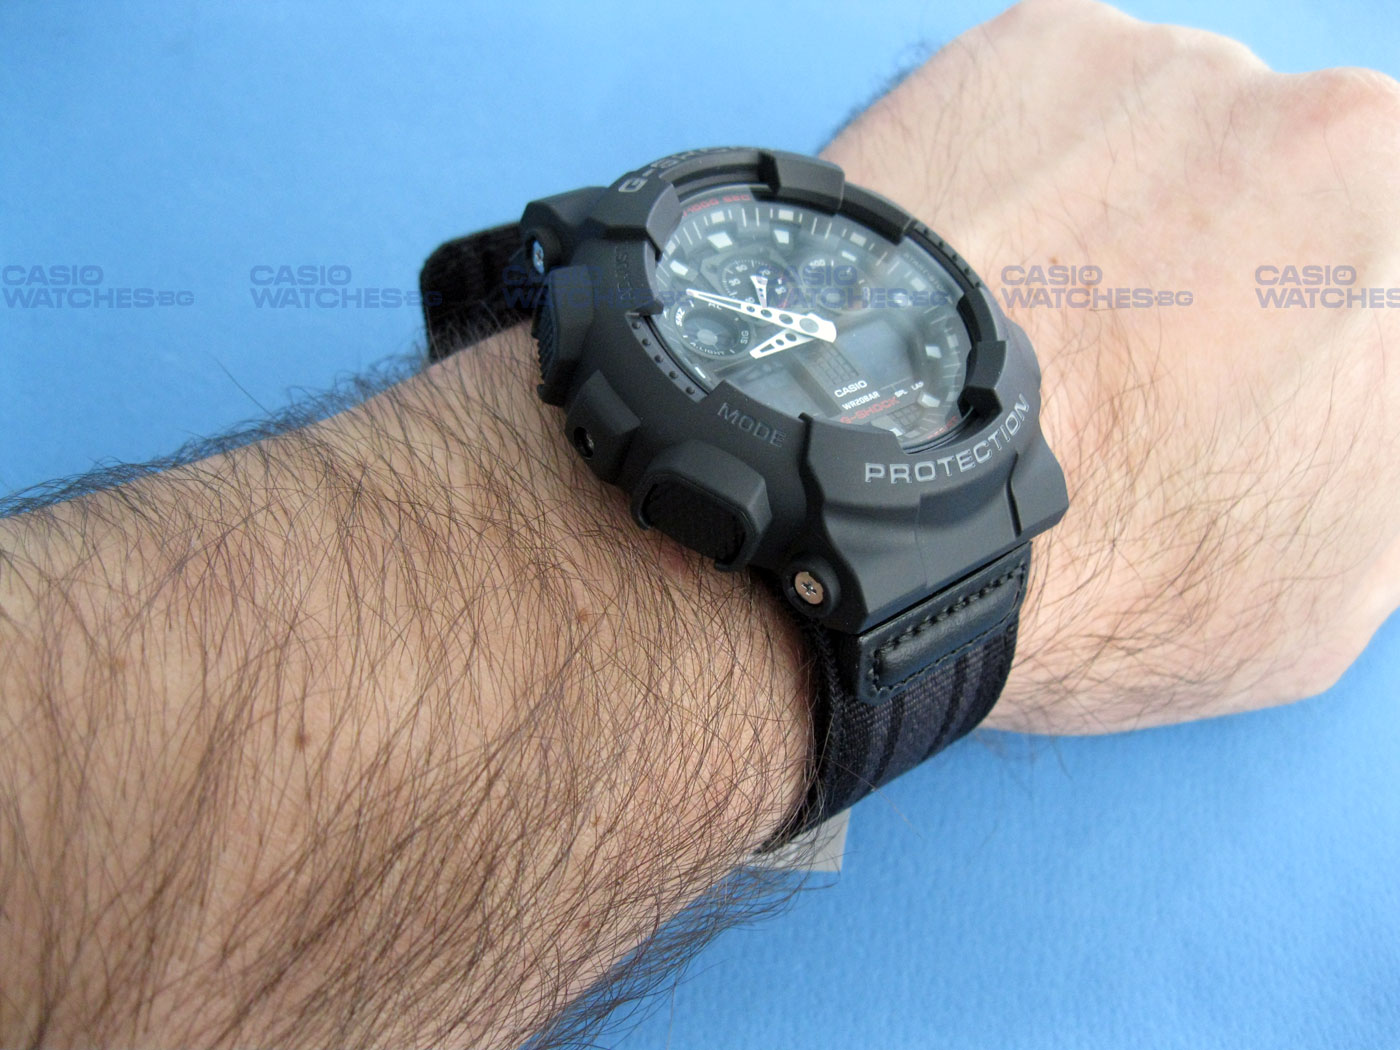 Casio G Shock Watch Ga 100 1a1d Fashion Sports Watch C9 - Relgios 77